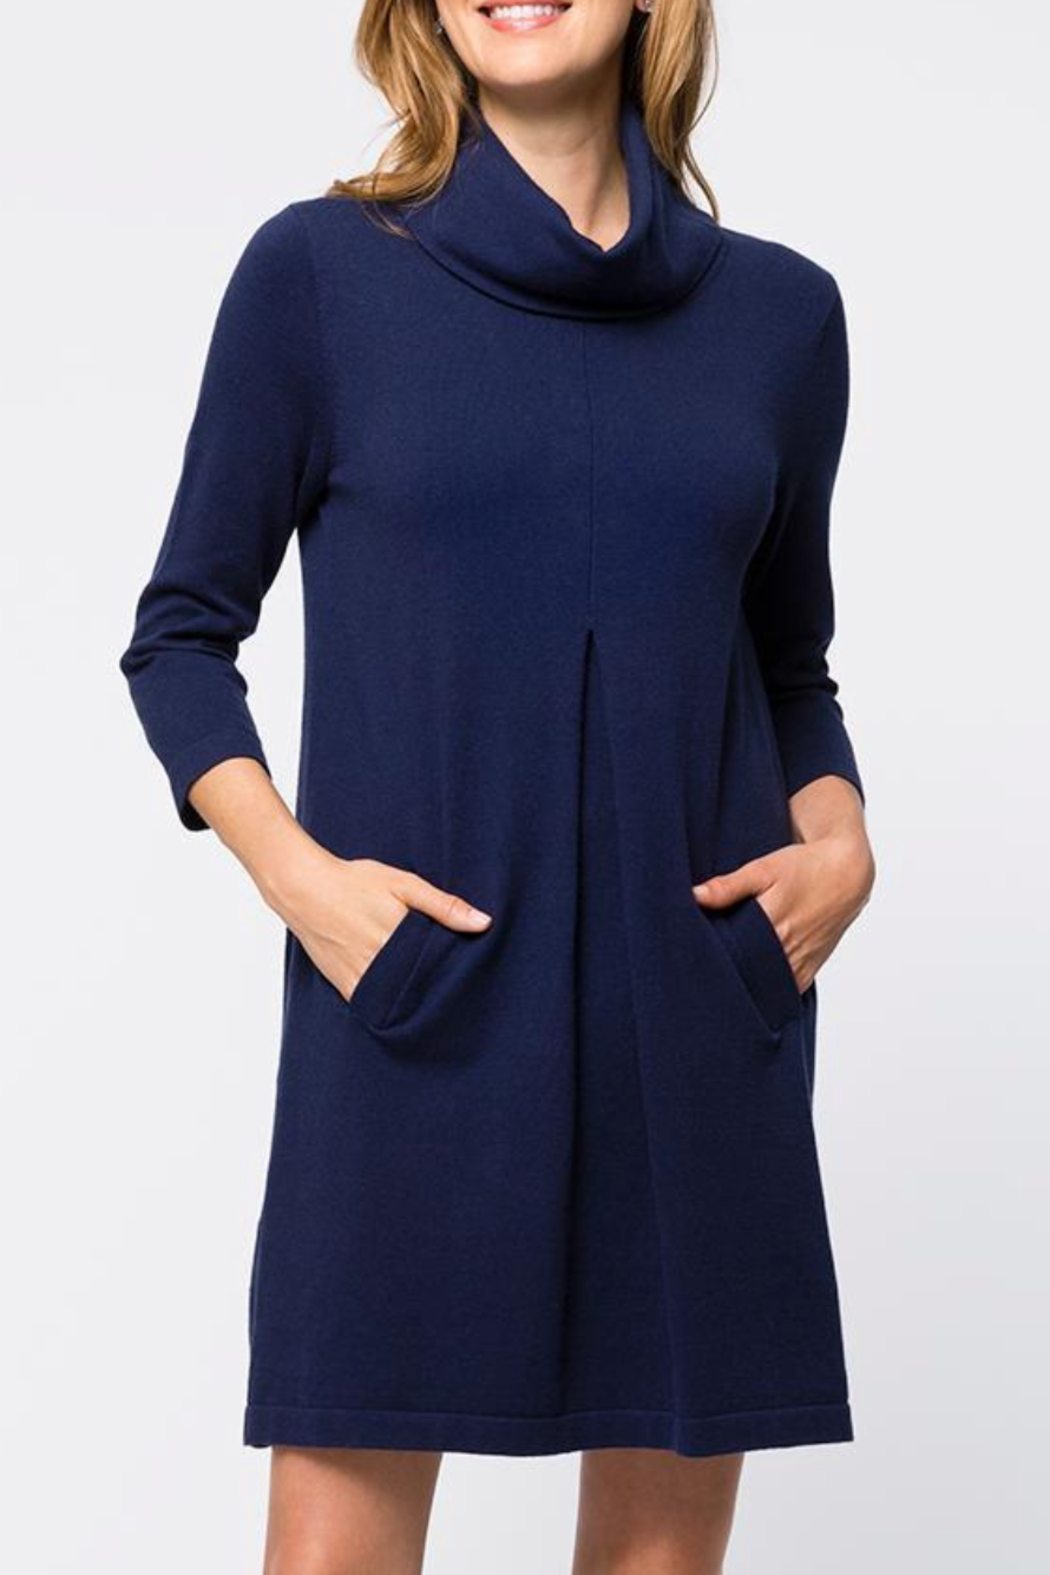 Tyler Boe Kim Cotton/Cashmere Dress - Front Cropped Image